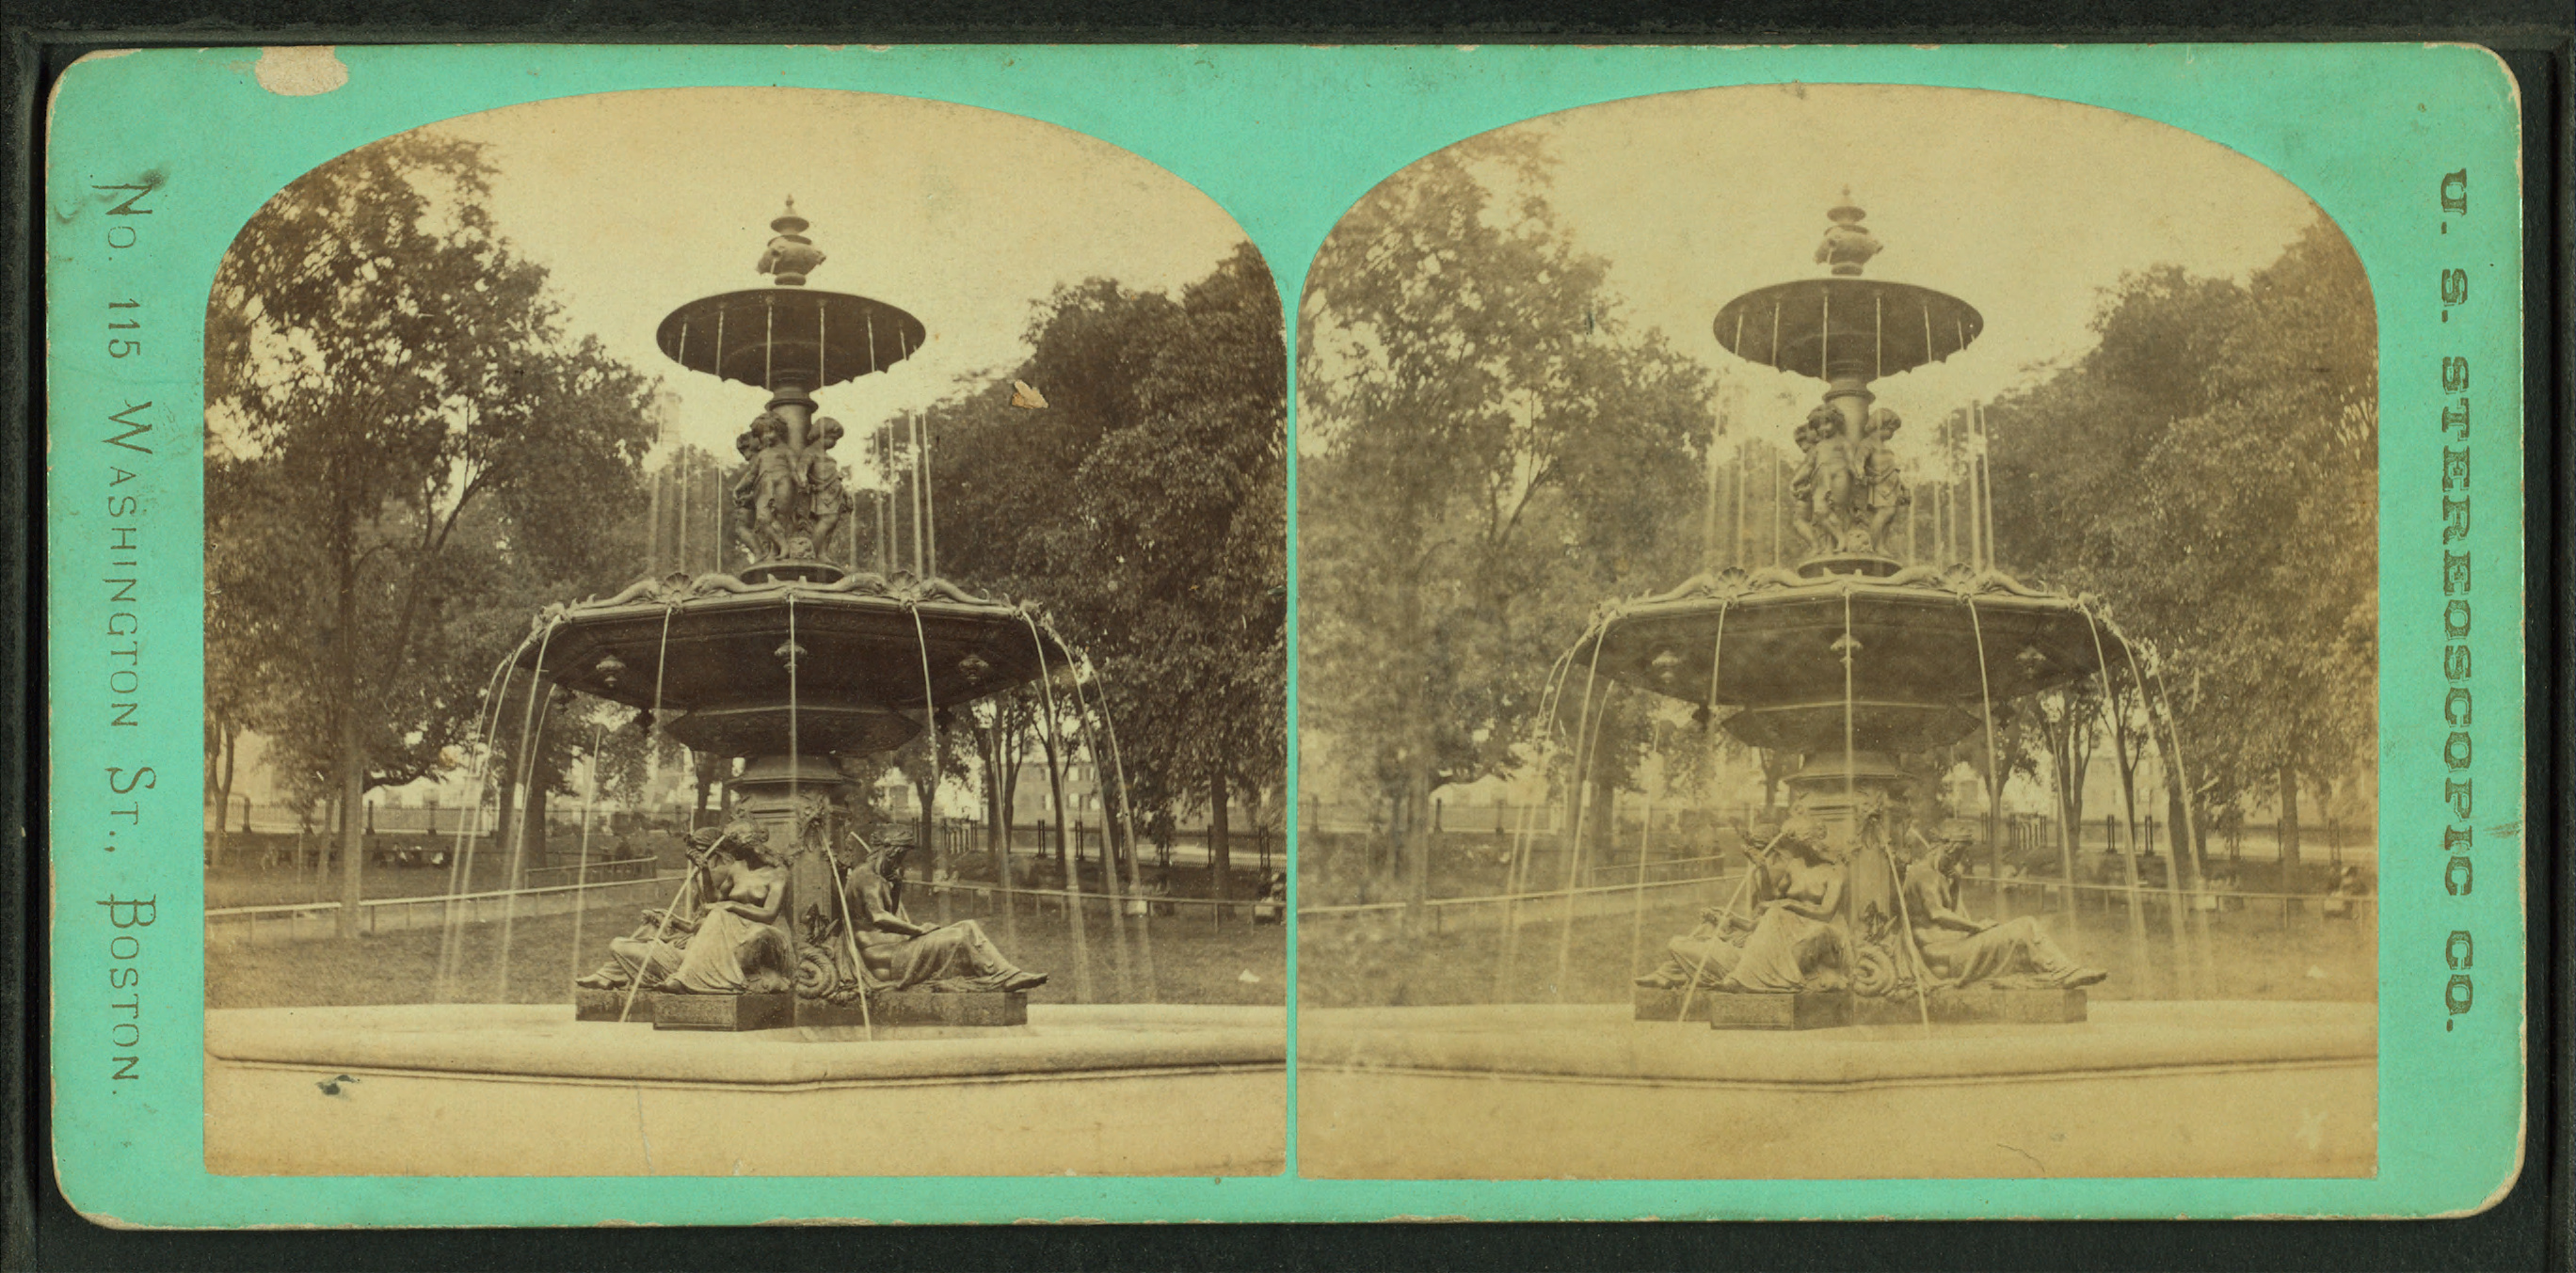 By U.S. Stereoscopic Co. -- Publisher [Public domain], via Wikimedia Commons